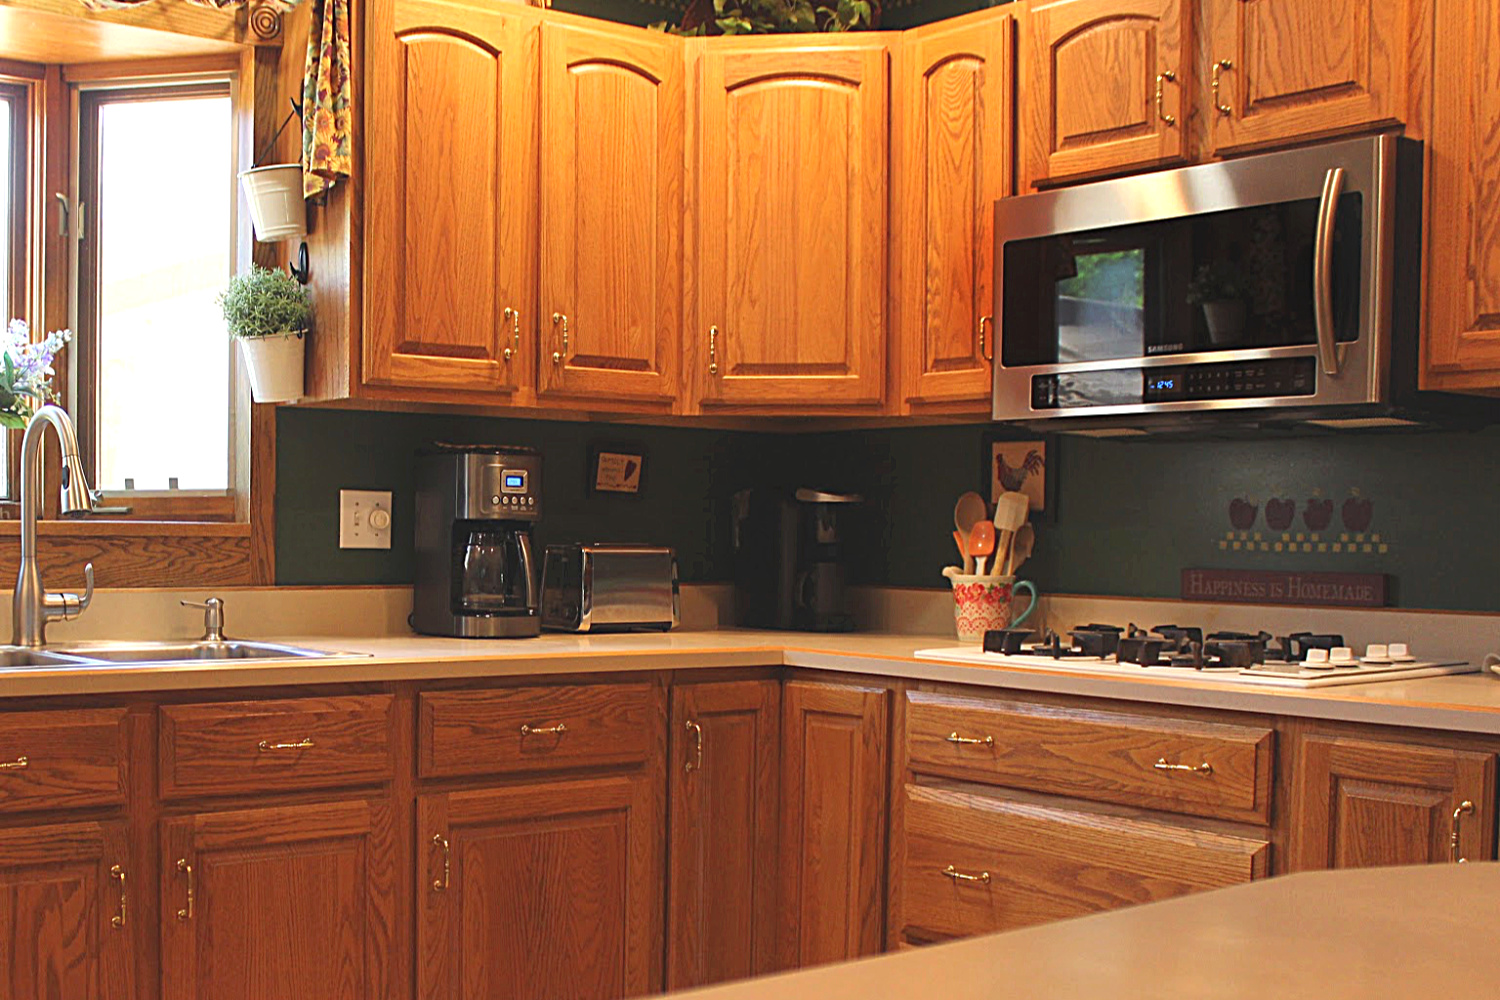 a kitchen with a microwave. Microwave cleaning hacks you can try today